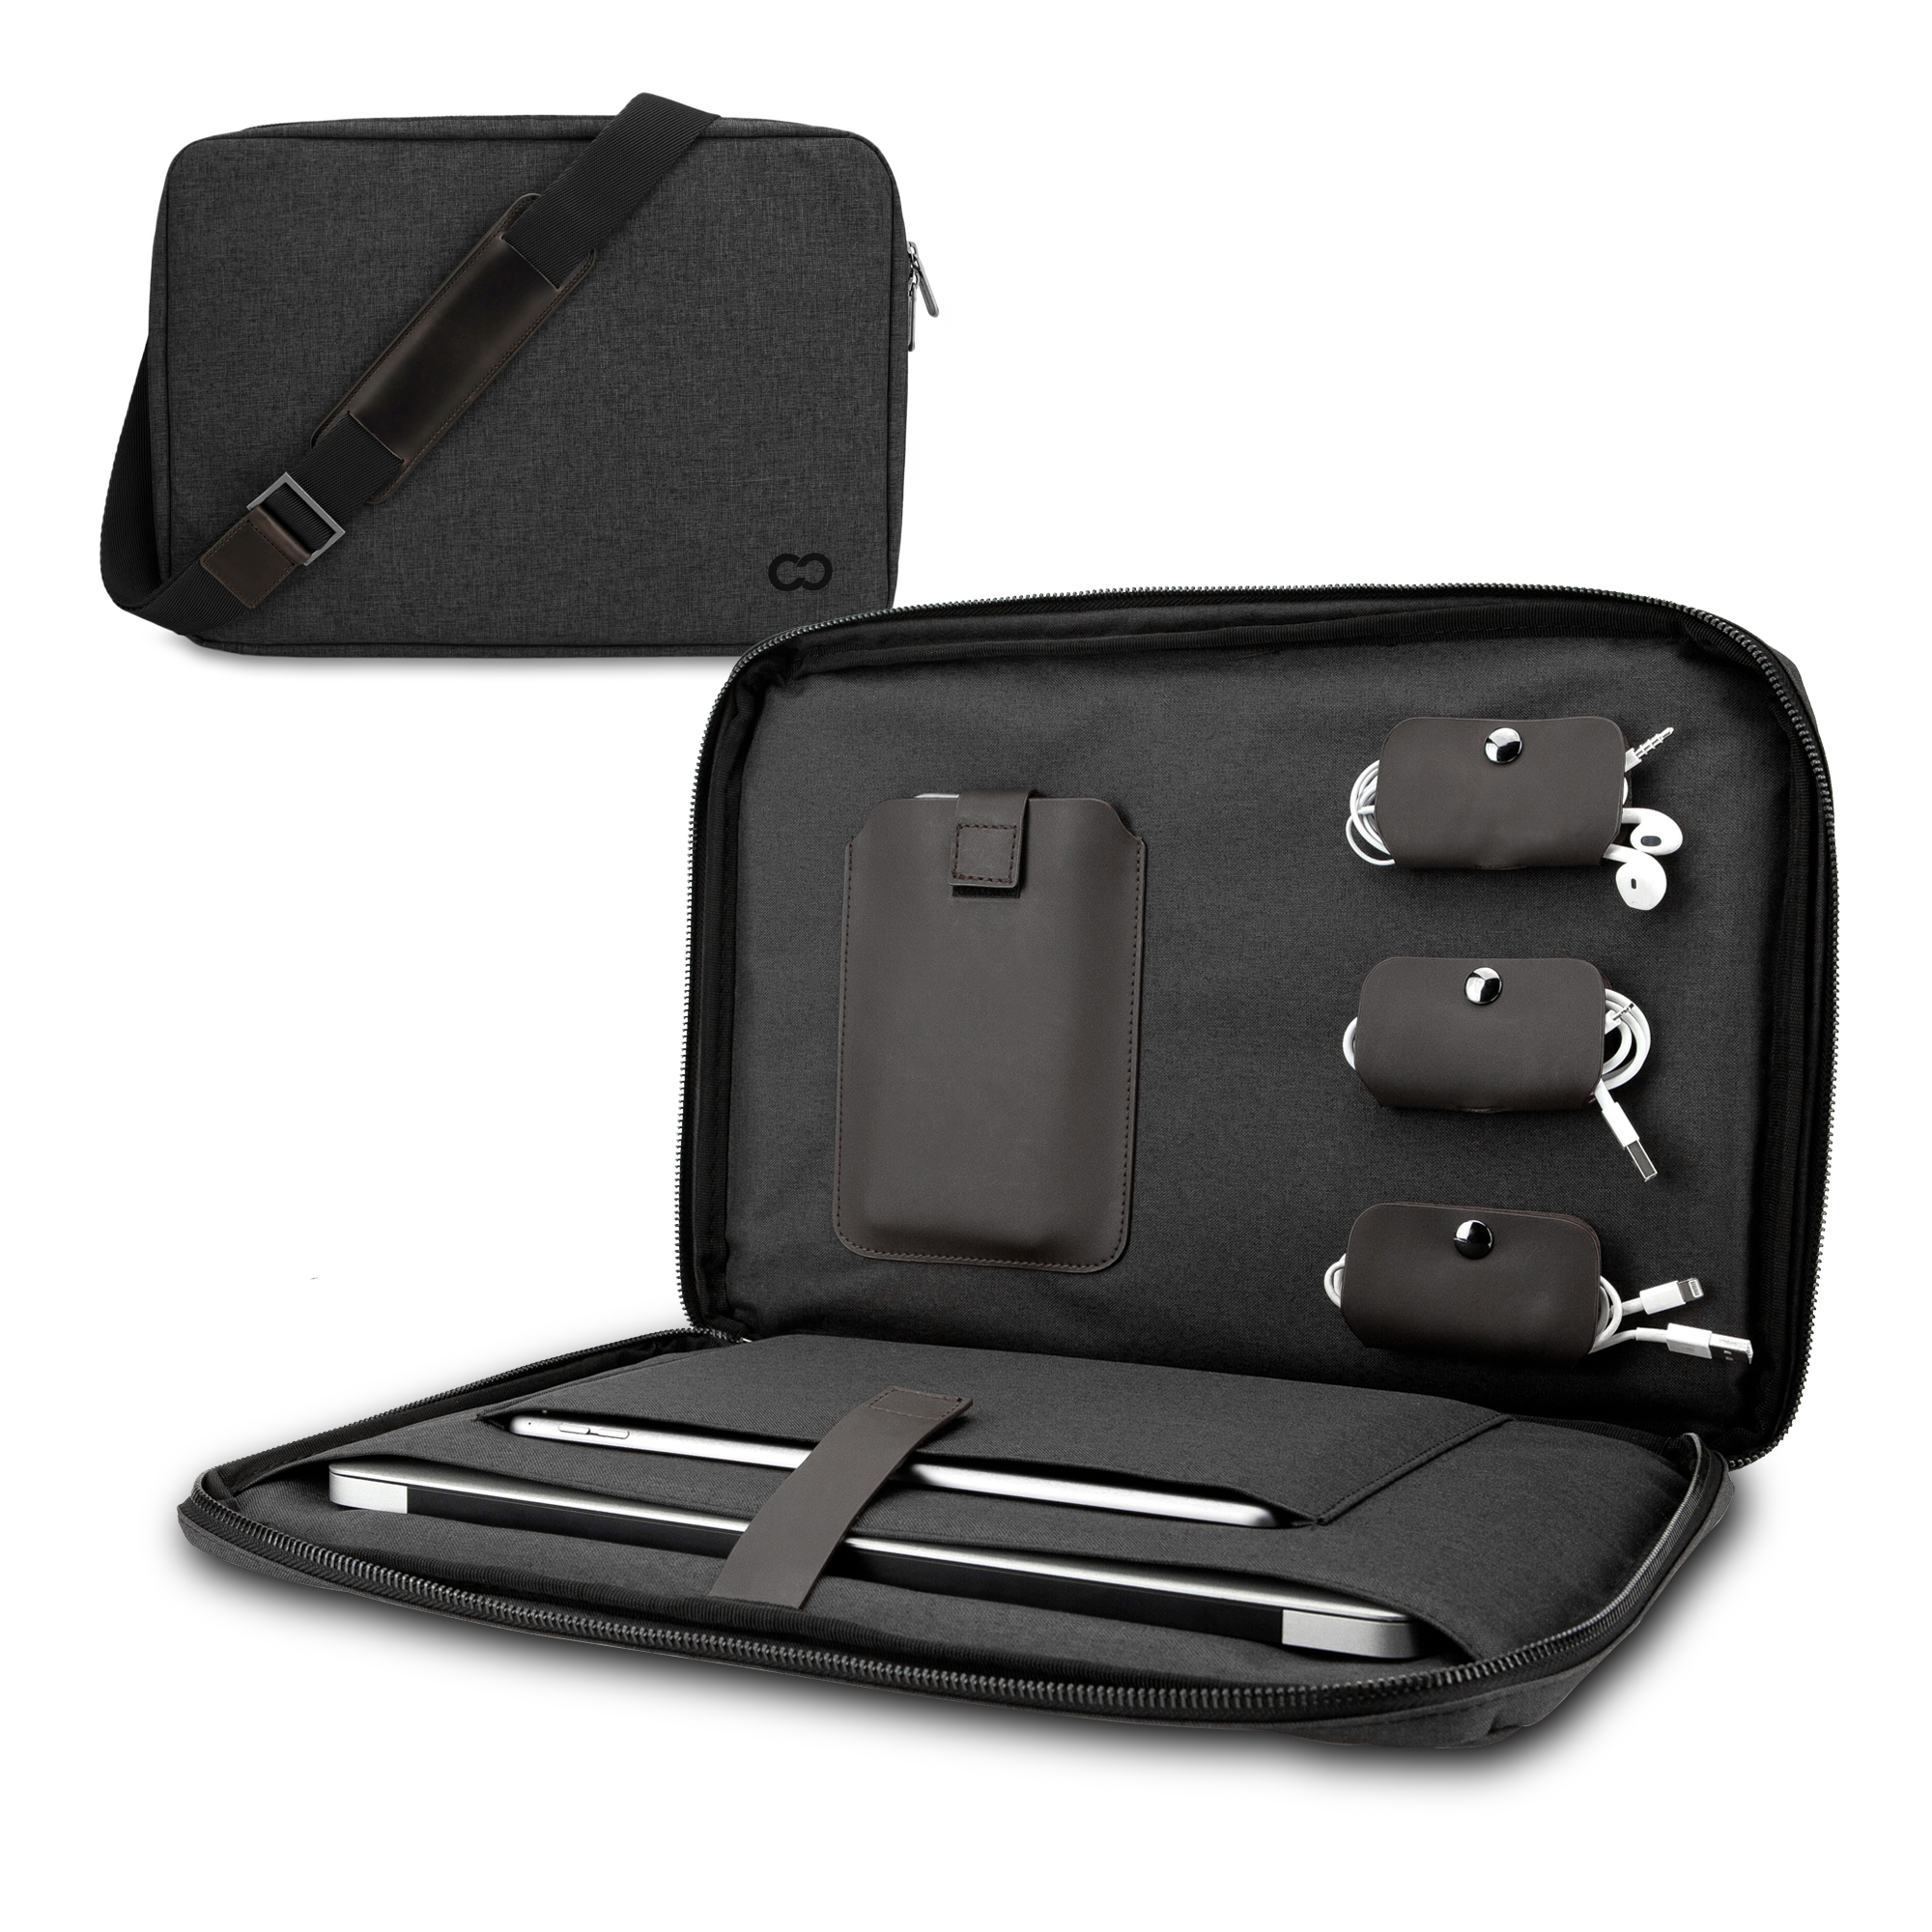 MacBook Pro / Air CaseCrown Campus Commuter Sleeve / Messenger w/ Cable Organizers